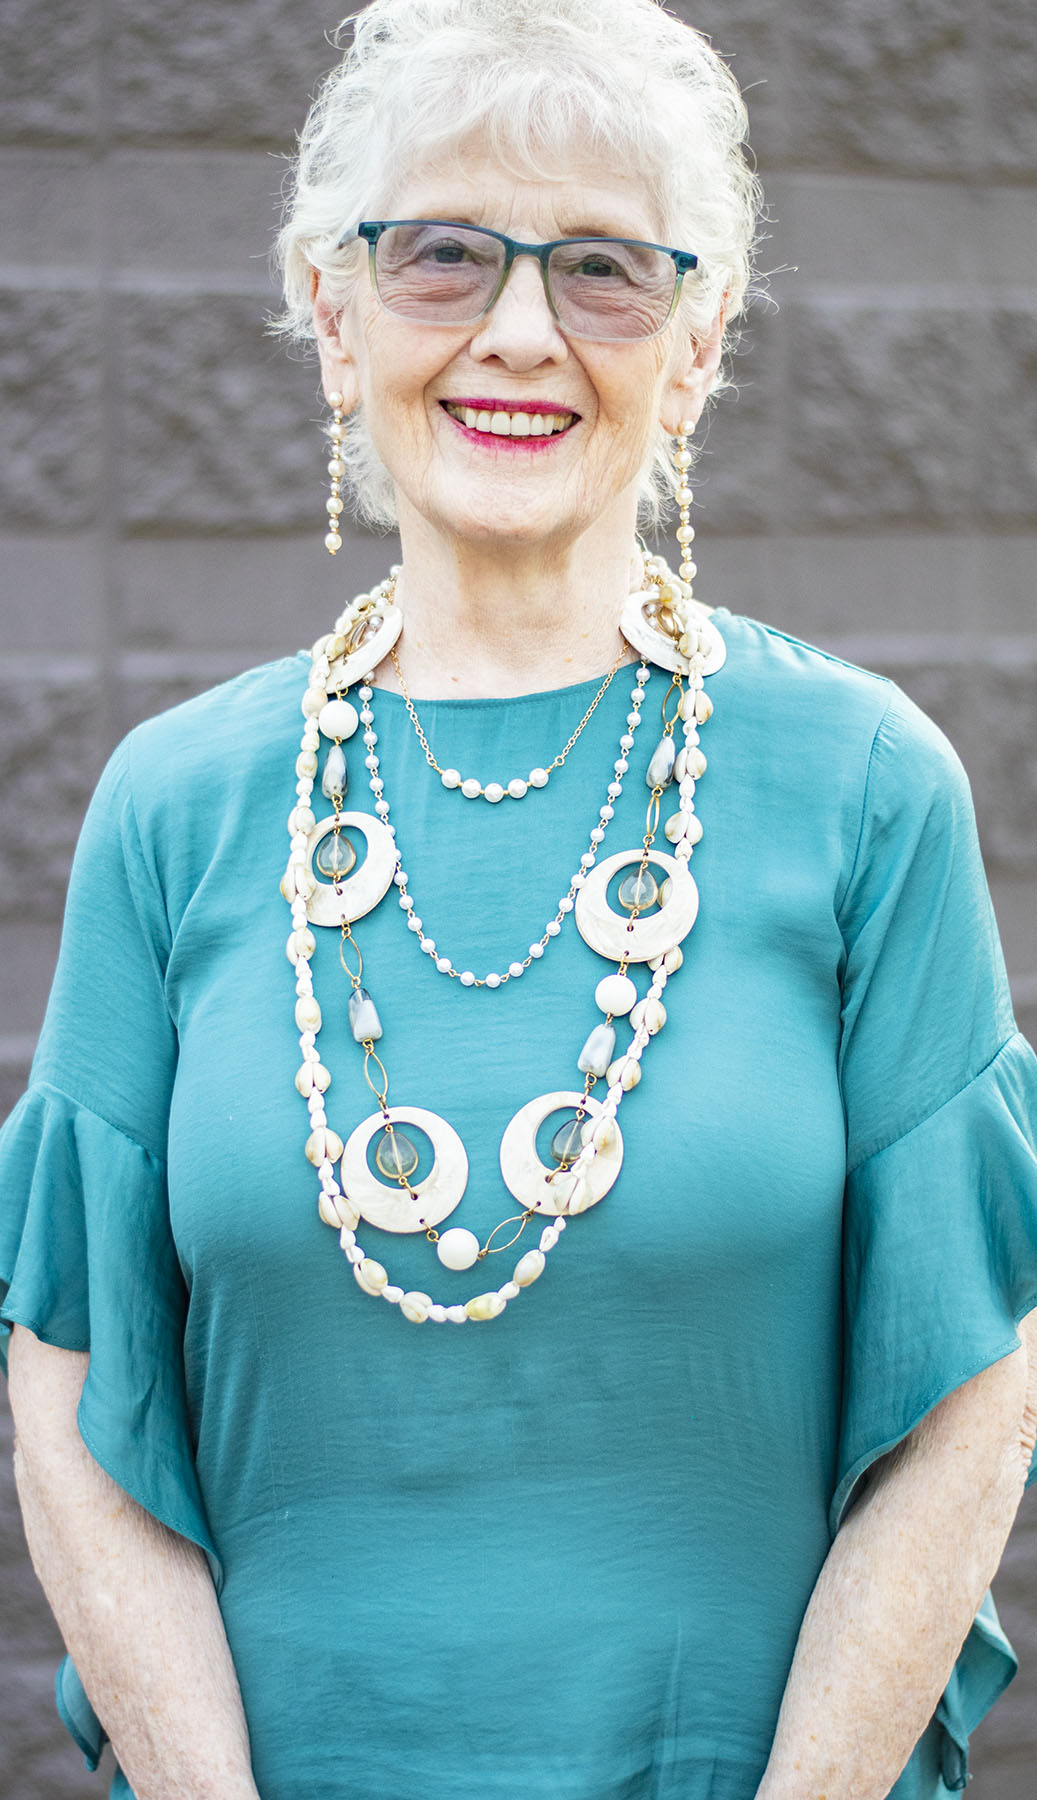 Exploit Your Jewelry Box: How to Wear Multiple Necklaces